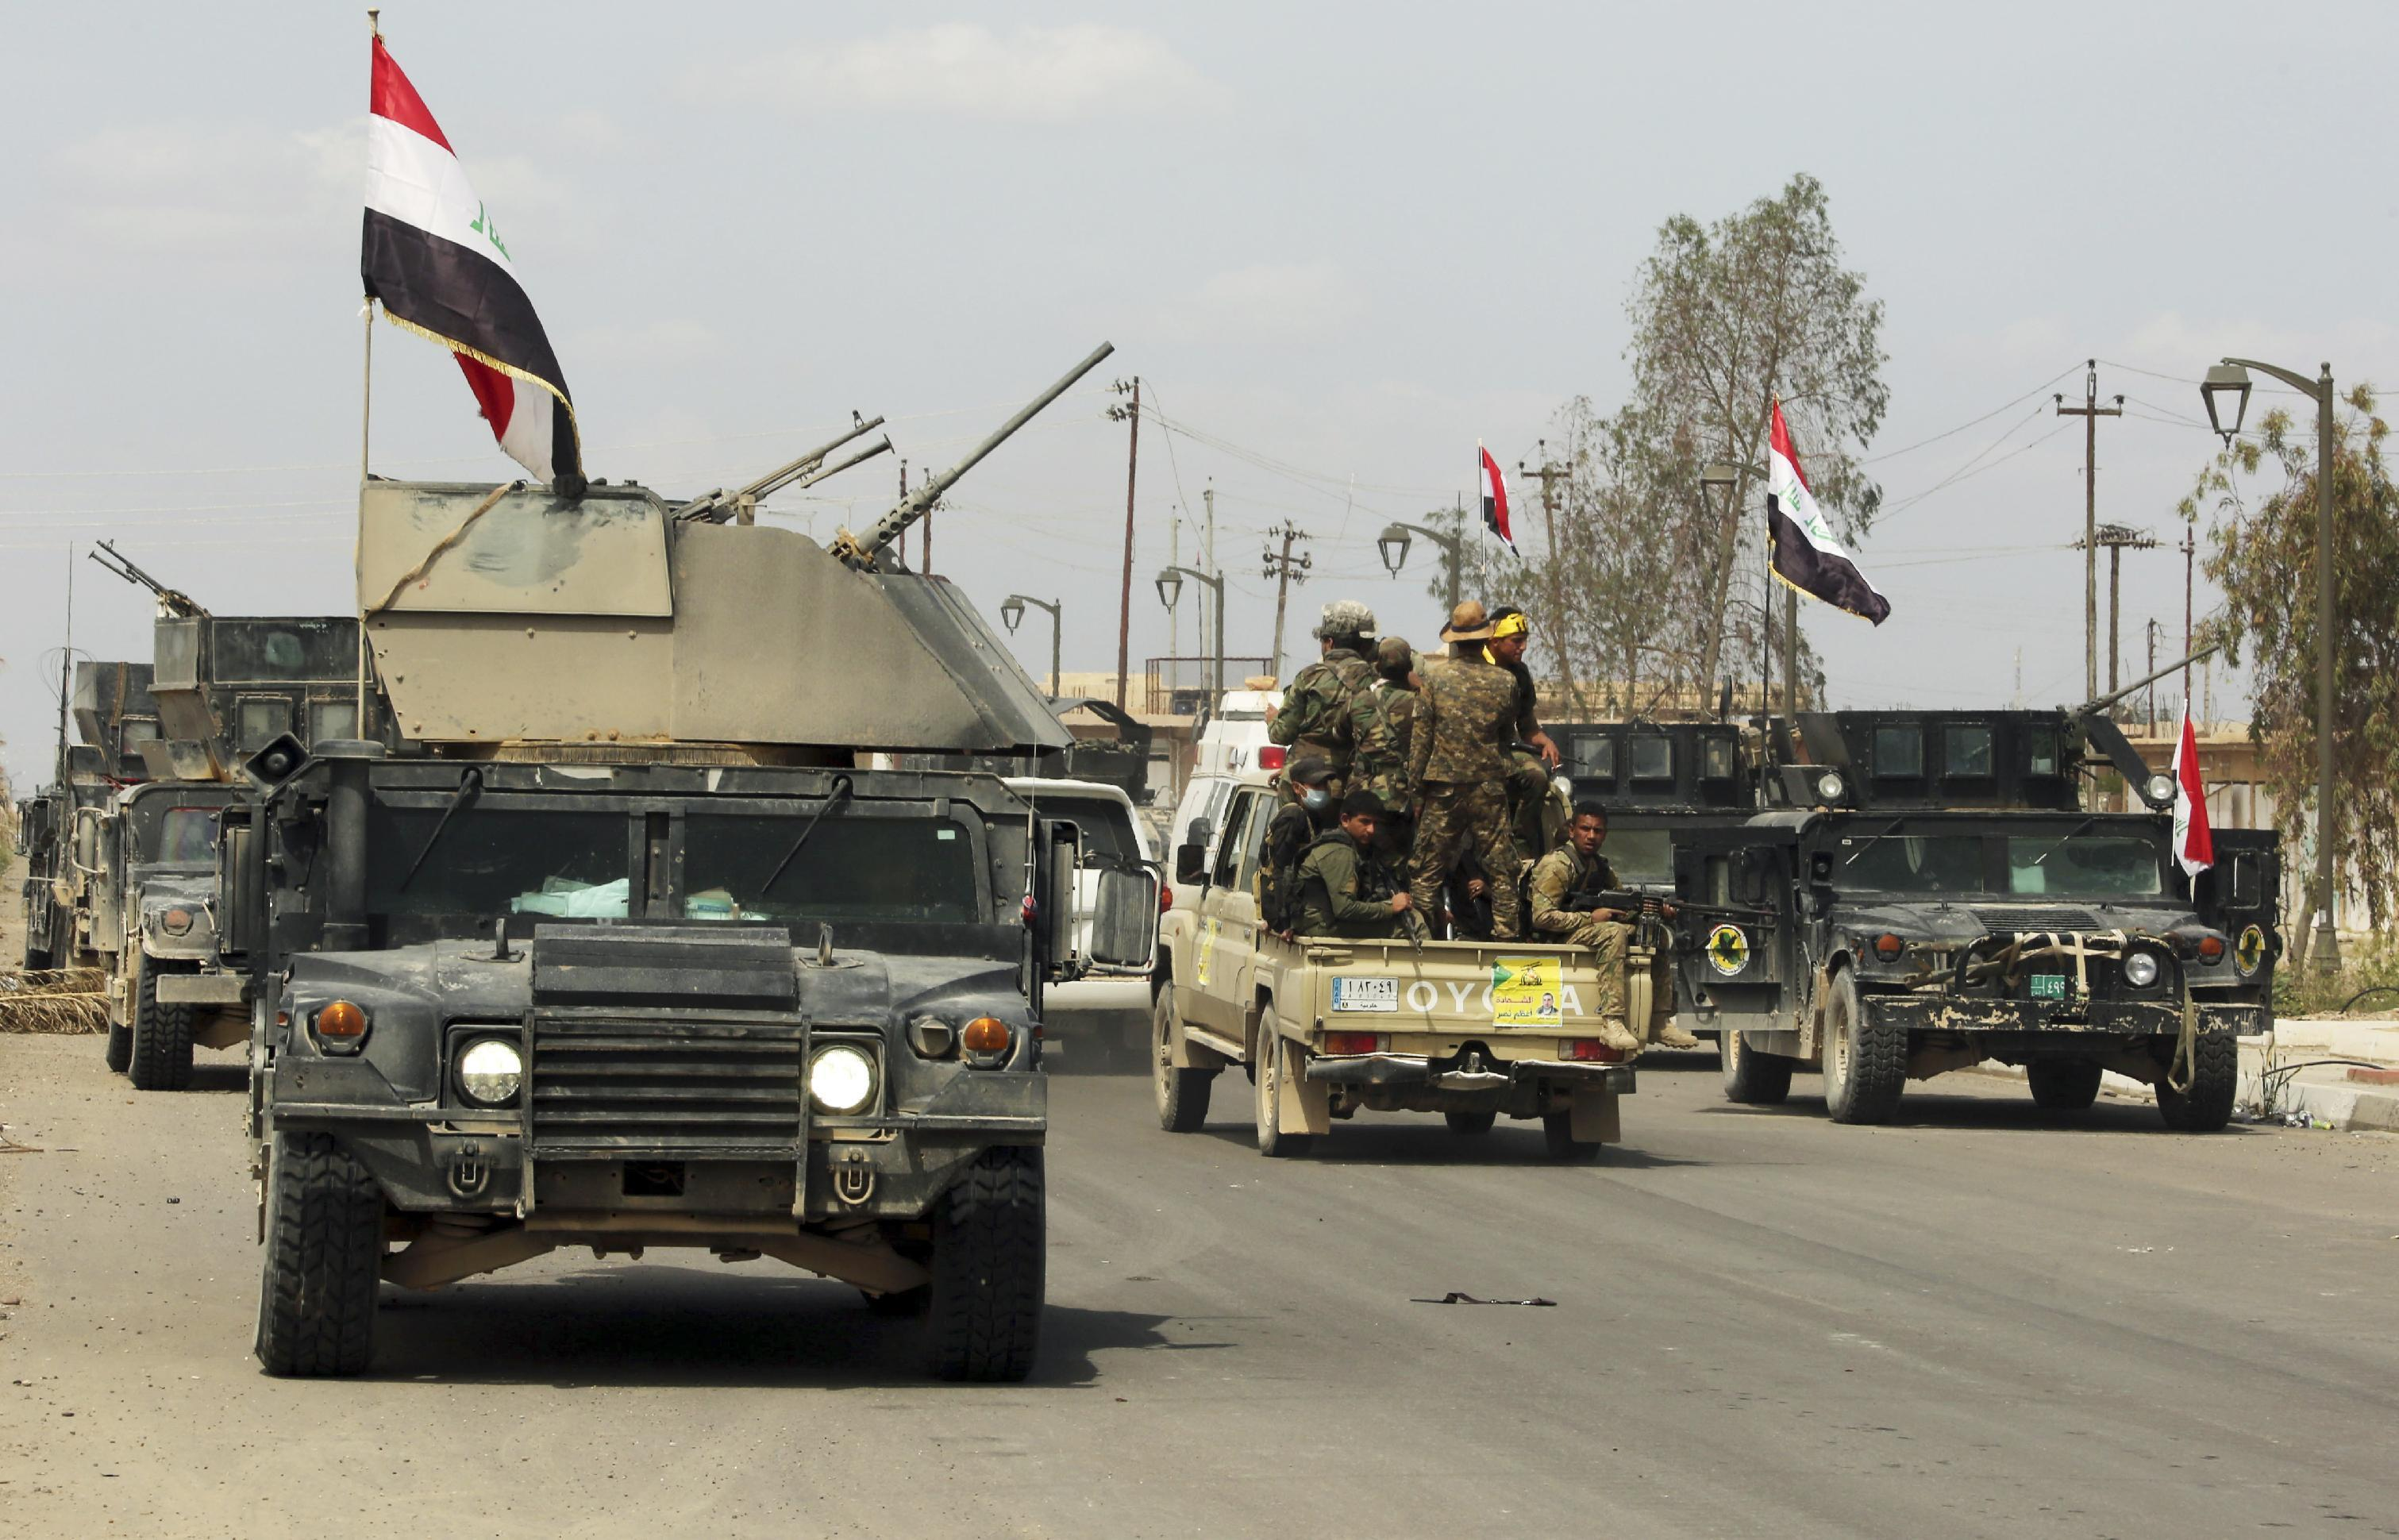 Tikrit: Sunni bastion on road to Islamic State-held Mosul